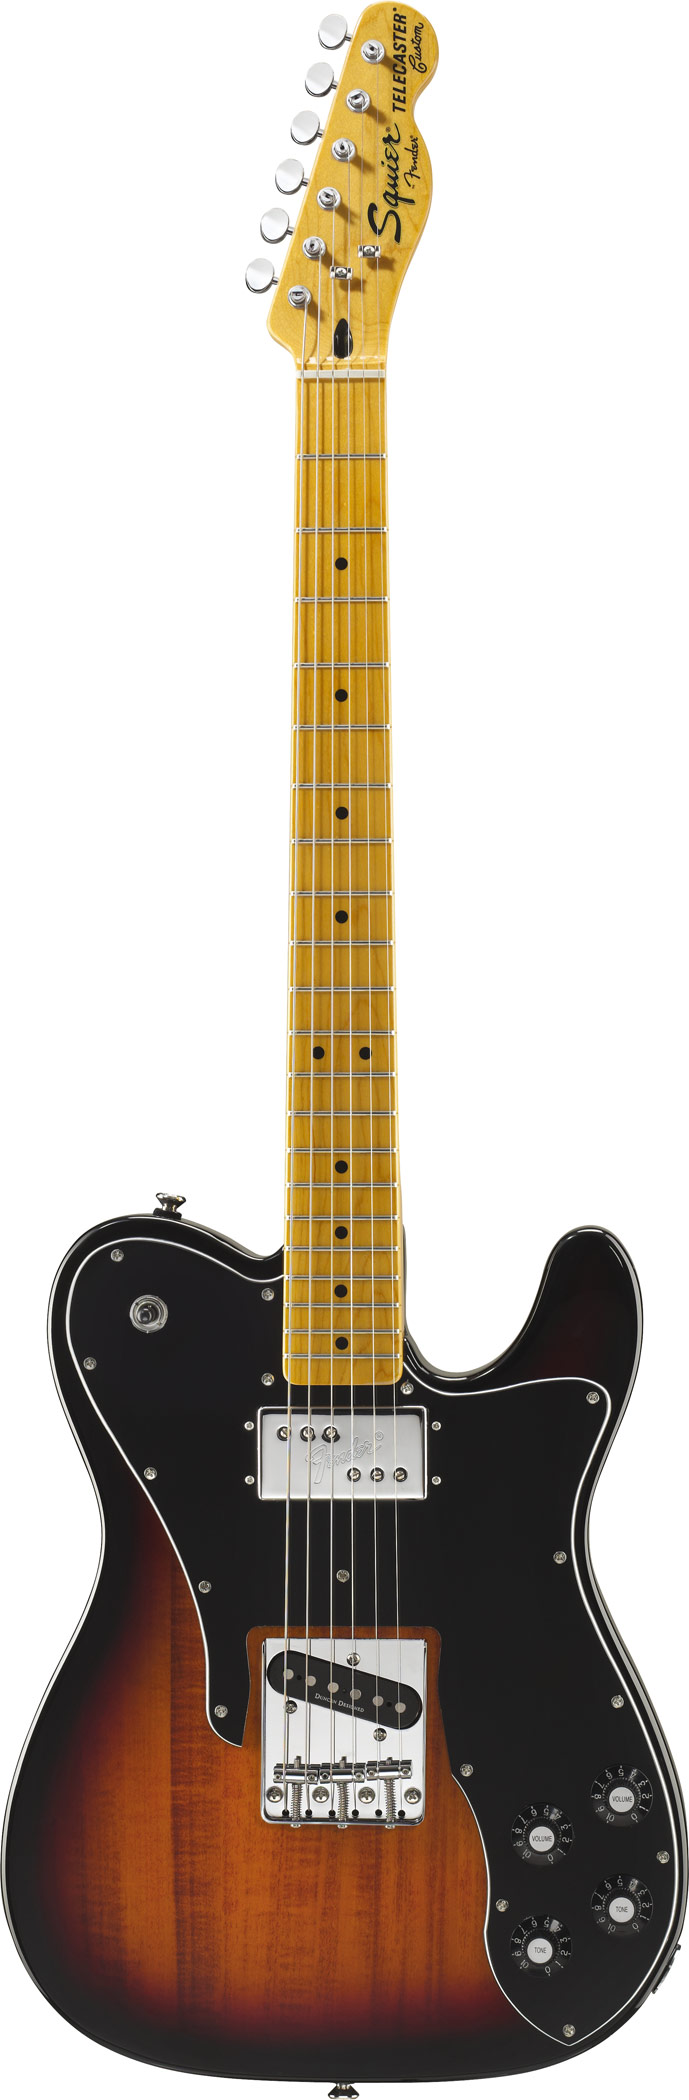 squier telecaster vintage custom significant task